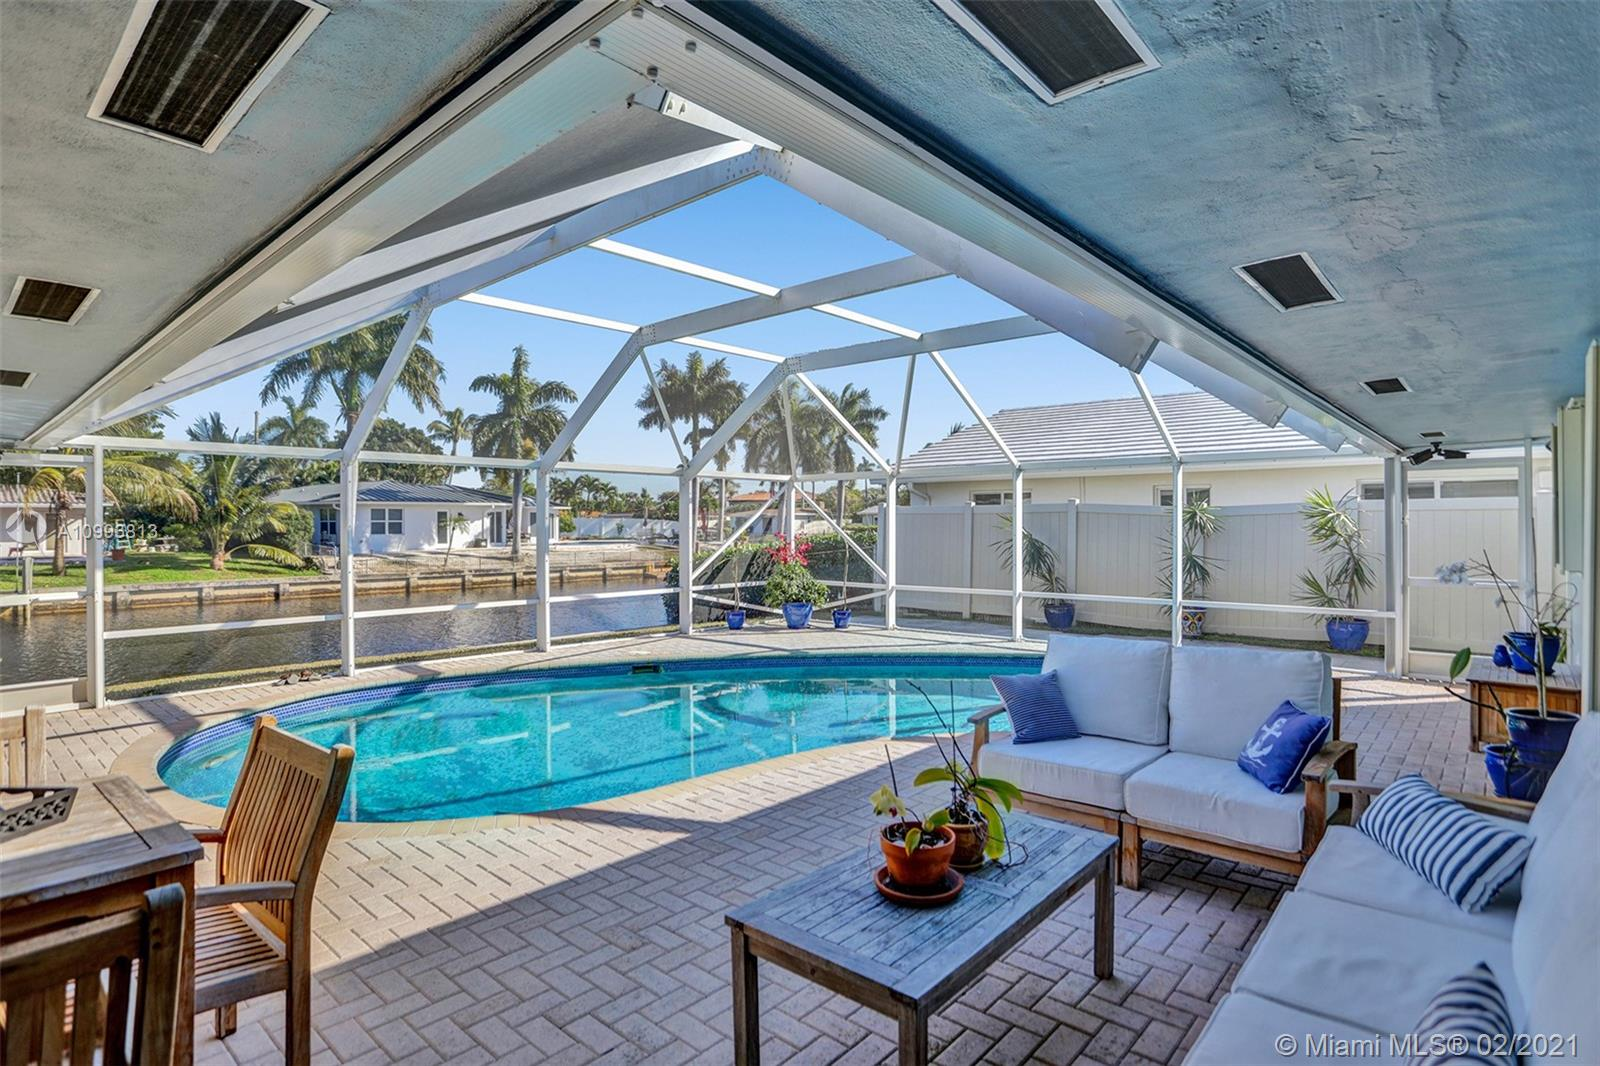 Captivating & spacious waterfront, pool home in highly desired Coral Ridge Isles. Ocean access in minutes, 4 fixed bridges. Boasting 75ft of waterfront this impeccable cul' de sac home has it all. Bright, spacious & open living concept floor plan, 2 large bedrooms, 2 baths & bonus (office/den space), inviting crystal clear pool & waterfront views from almost every room in the house & 1 car attached garage. All Miami Dade rated impact windows & doors, accordion shutters for additional protection, environmentally conscious EcoSmarte Ozone pool system (C02 +UV Sterilizer). Tech upgrade to whole house surge suppressor system, ultra low loss coax + CAT6 in bedrooms/living room, 16 channel security system w/ DVR, 14 night vision cameras with infrared LED's. 40 Panel solar grid system (optional)